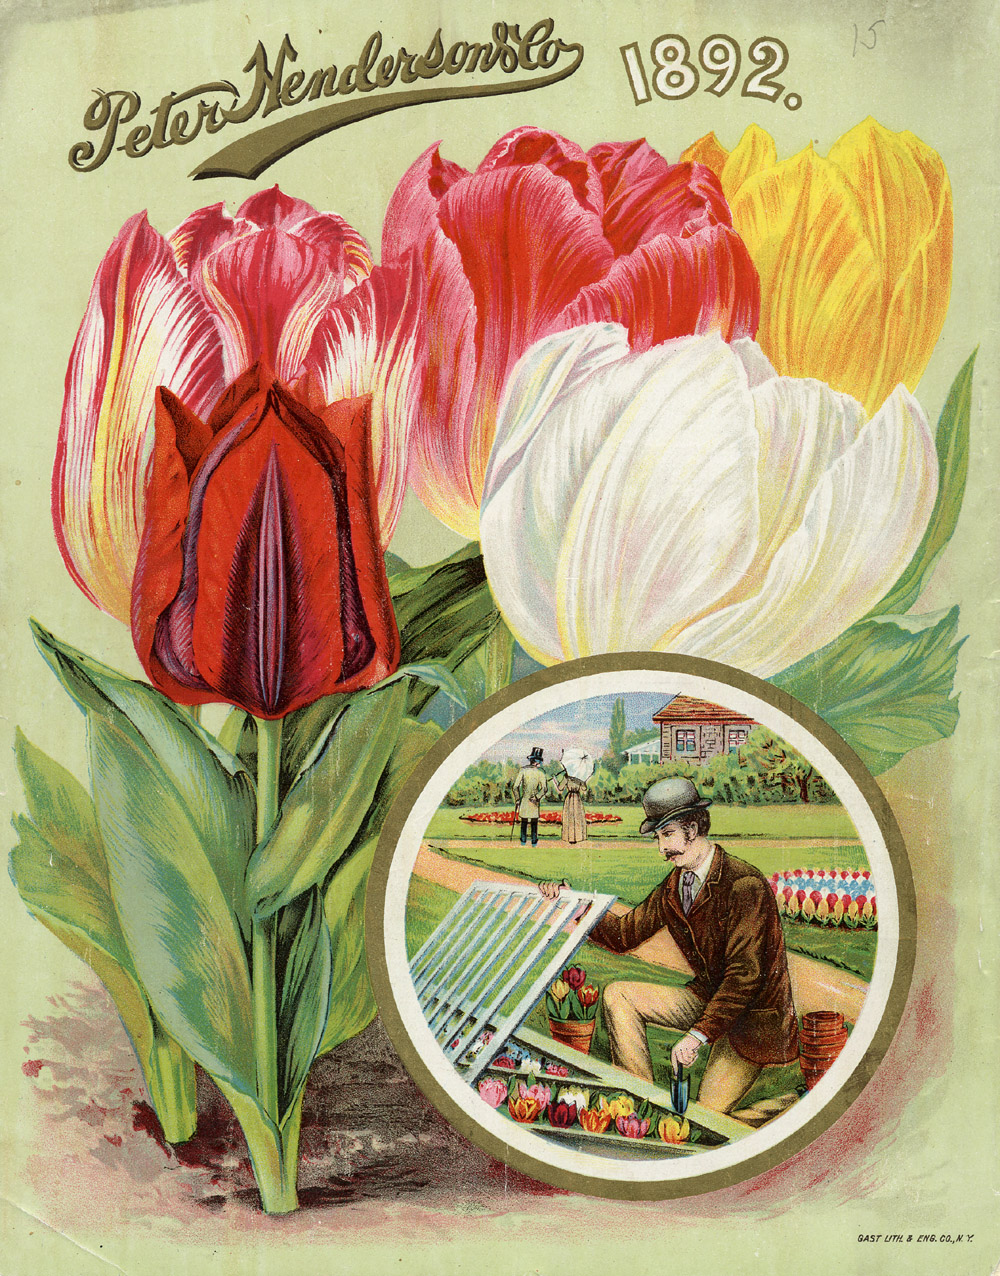 Henderson illustrated flwoers, but also the lawn in this catalog cover.